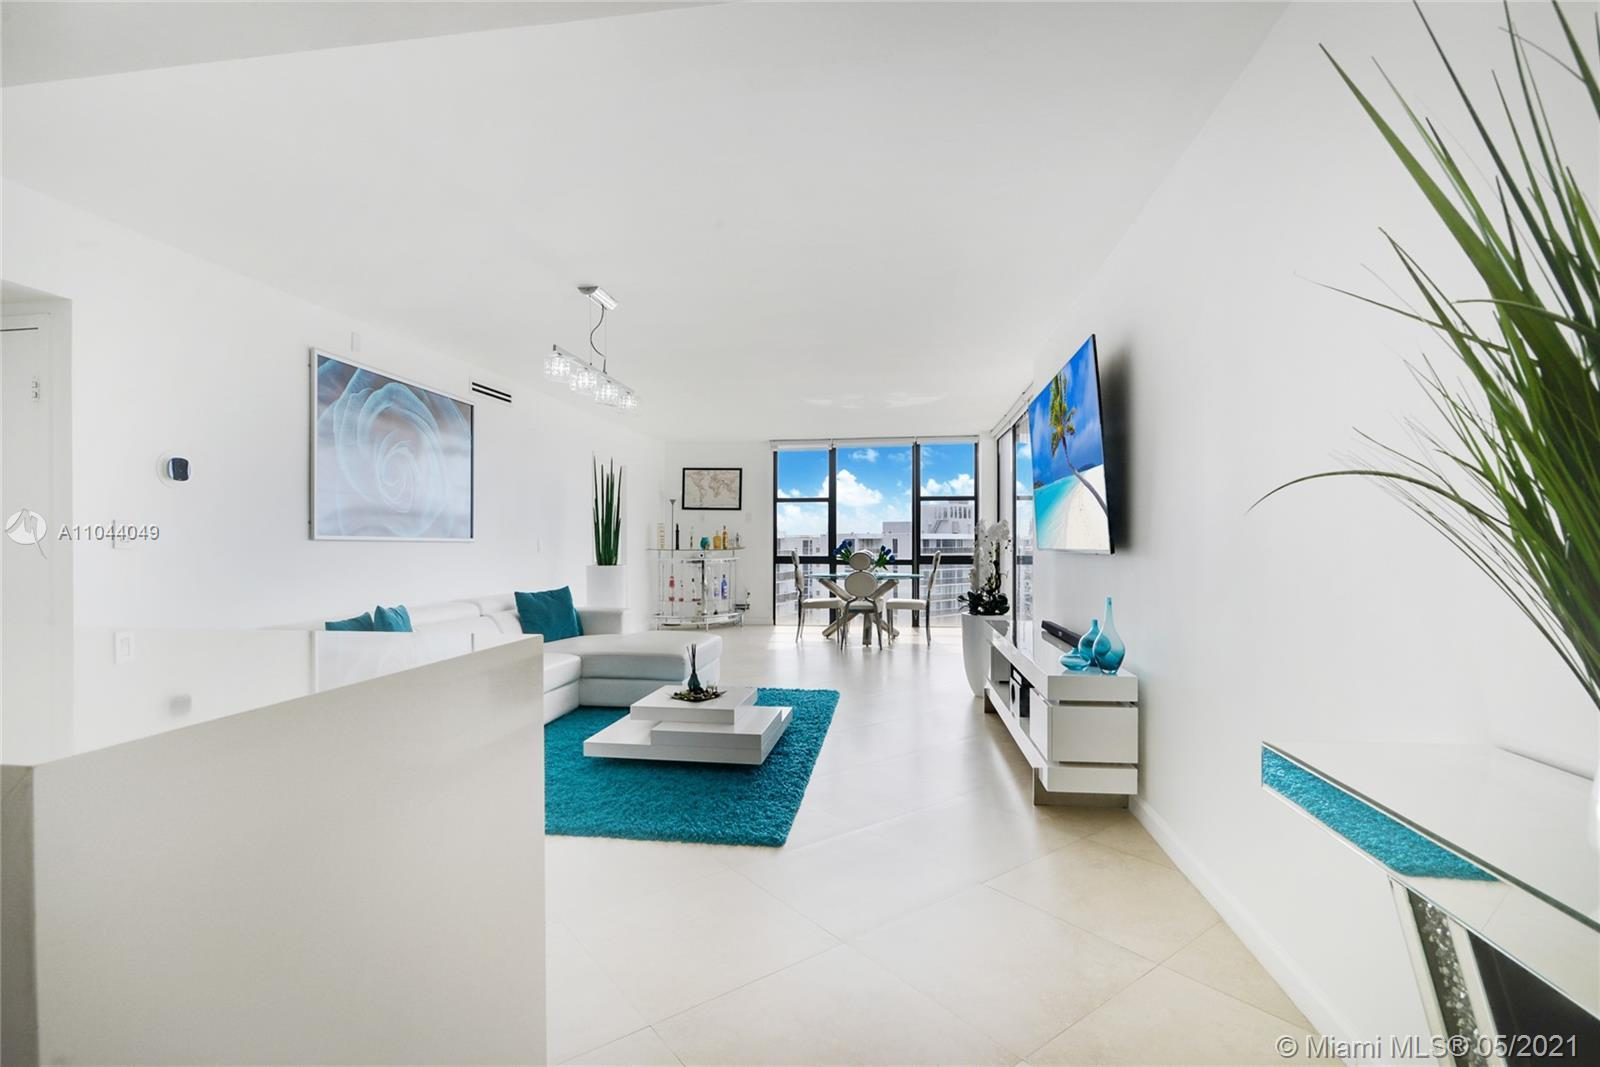 Located in the heart of the growing city of Aventura with spectacular views of the Turnberry Golf Co